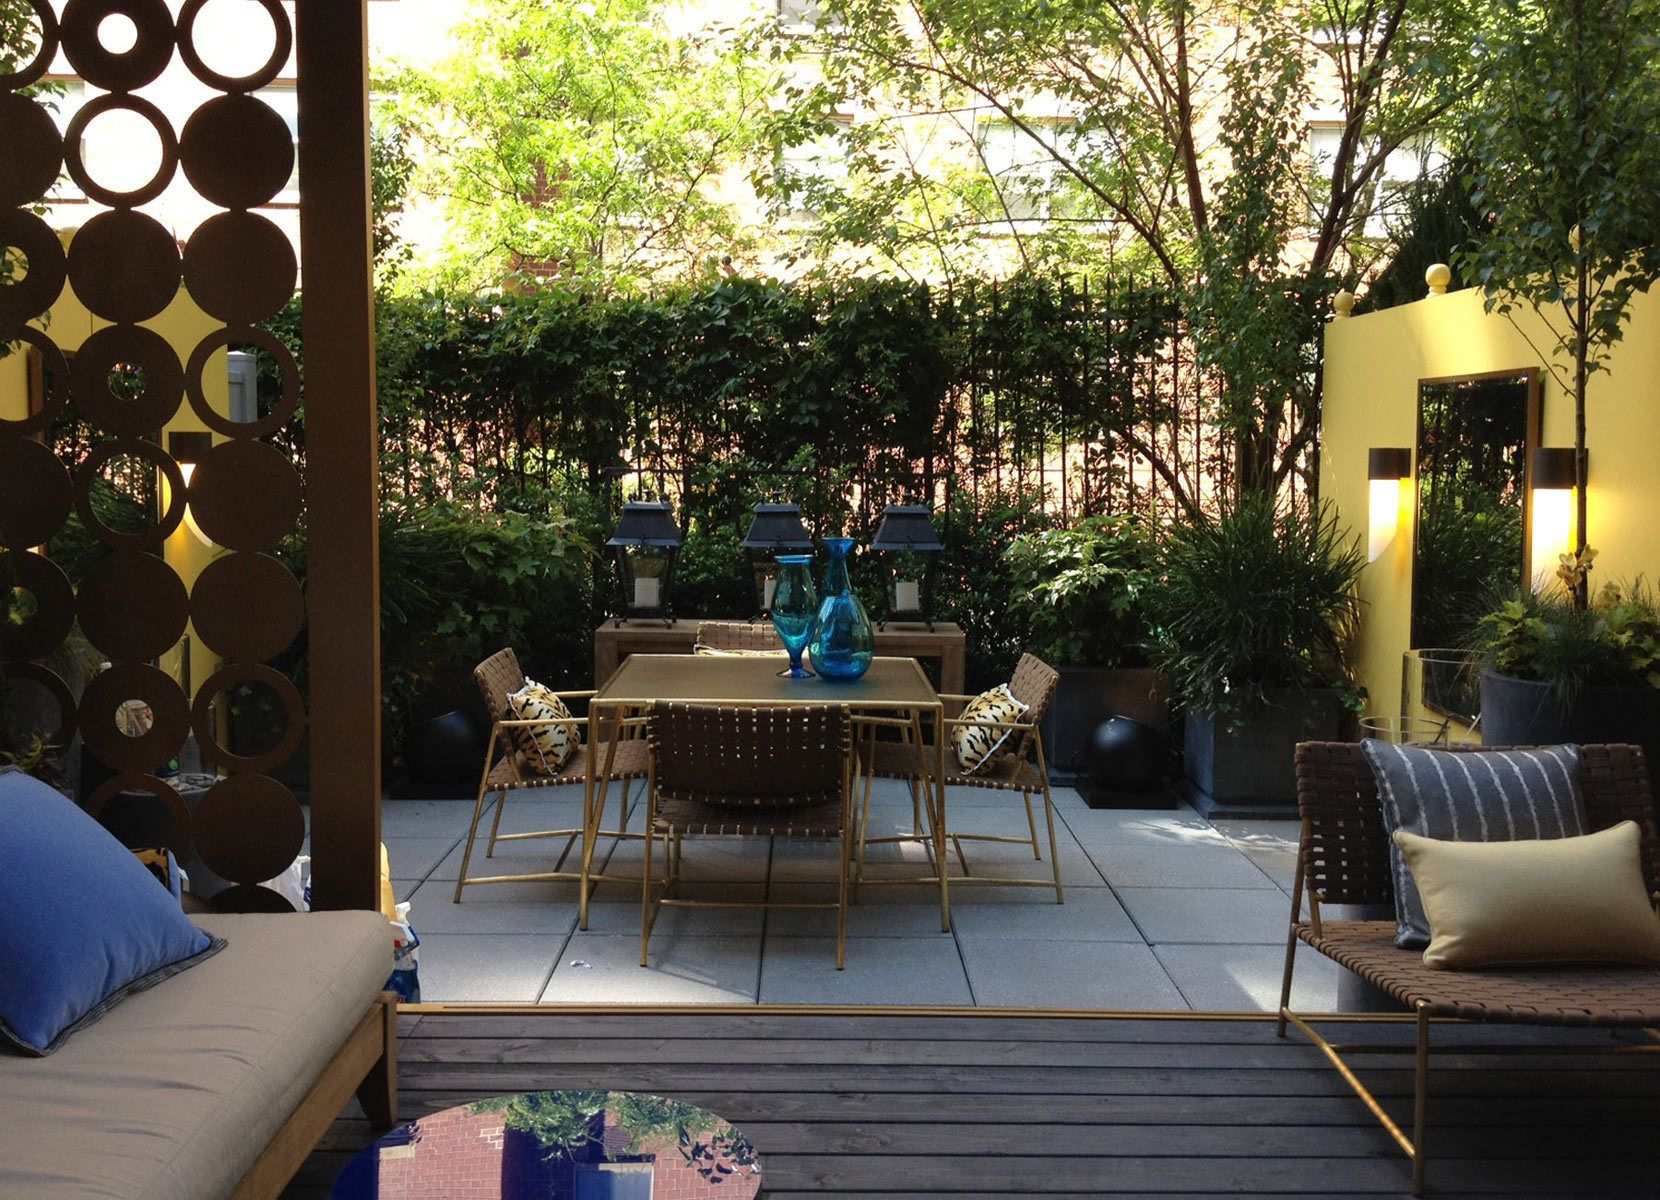 How to Make Outdoor Rooms